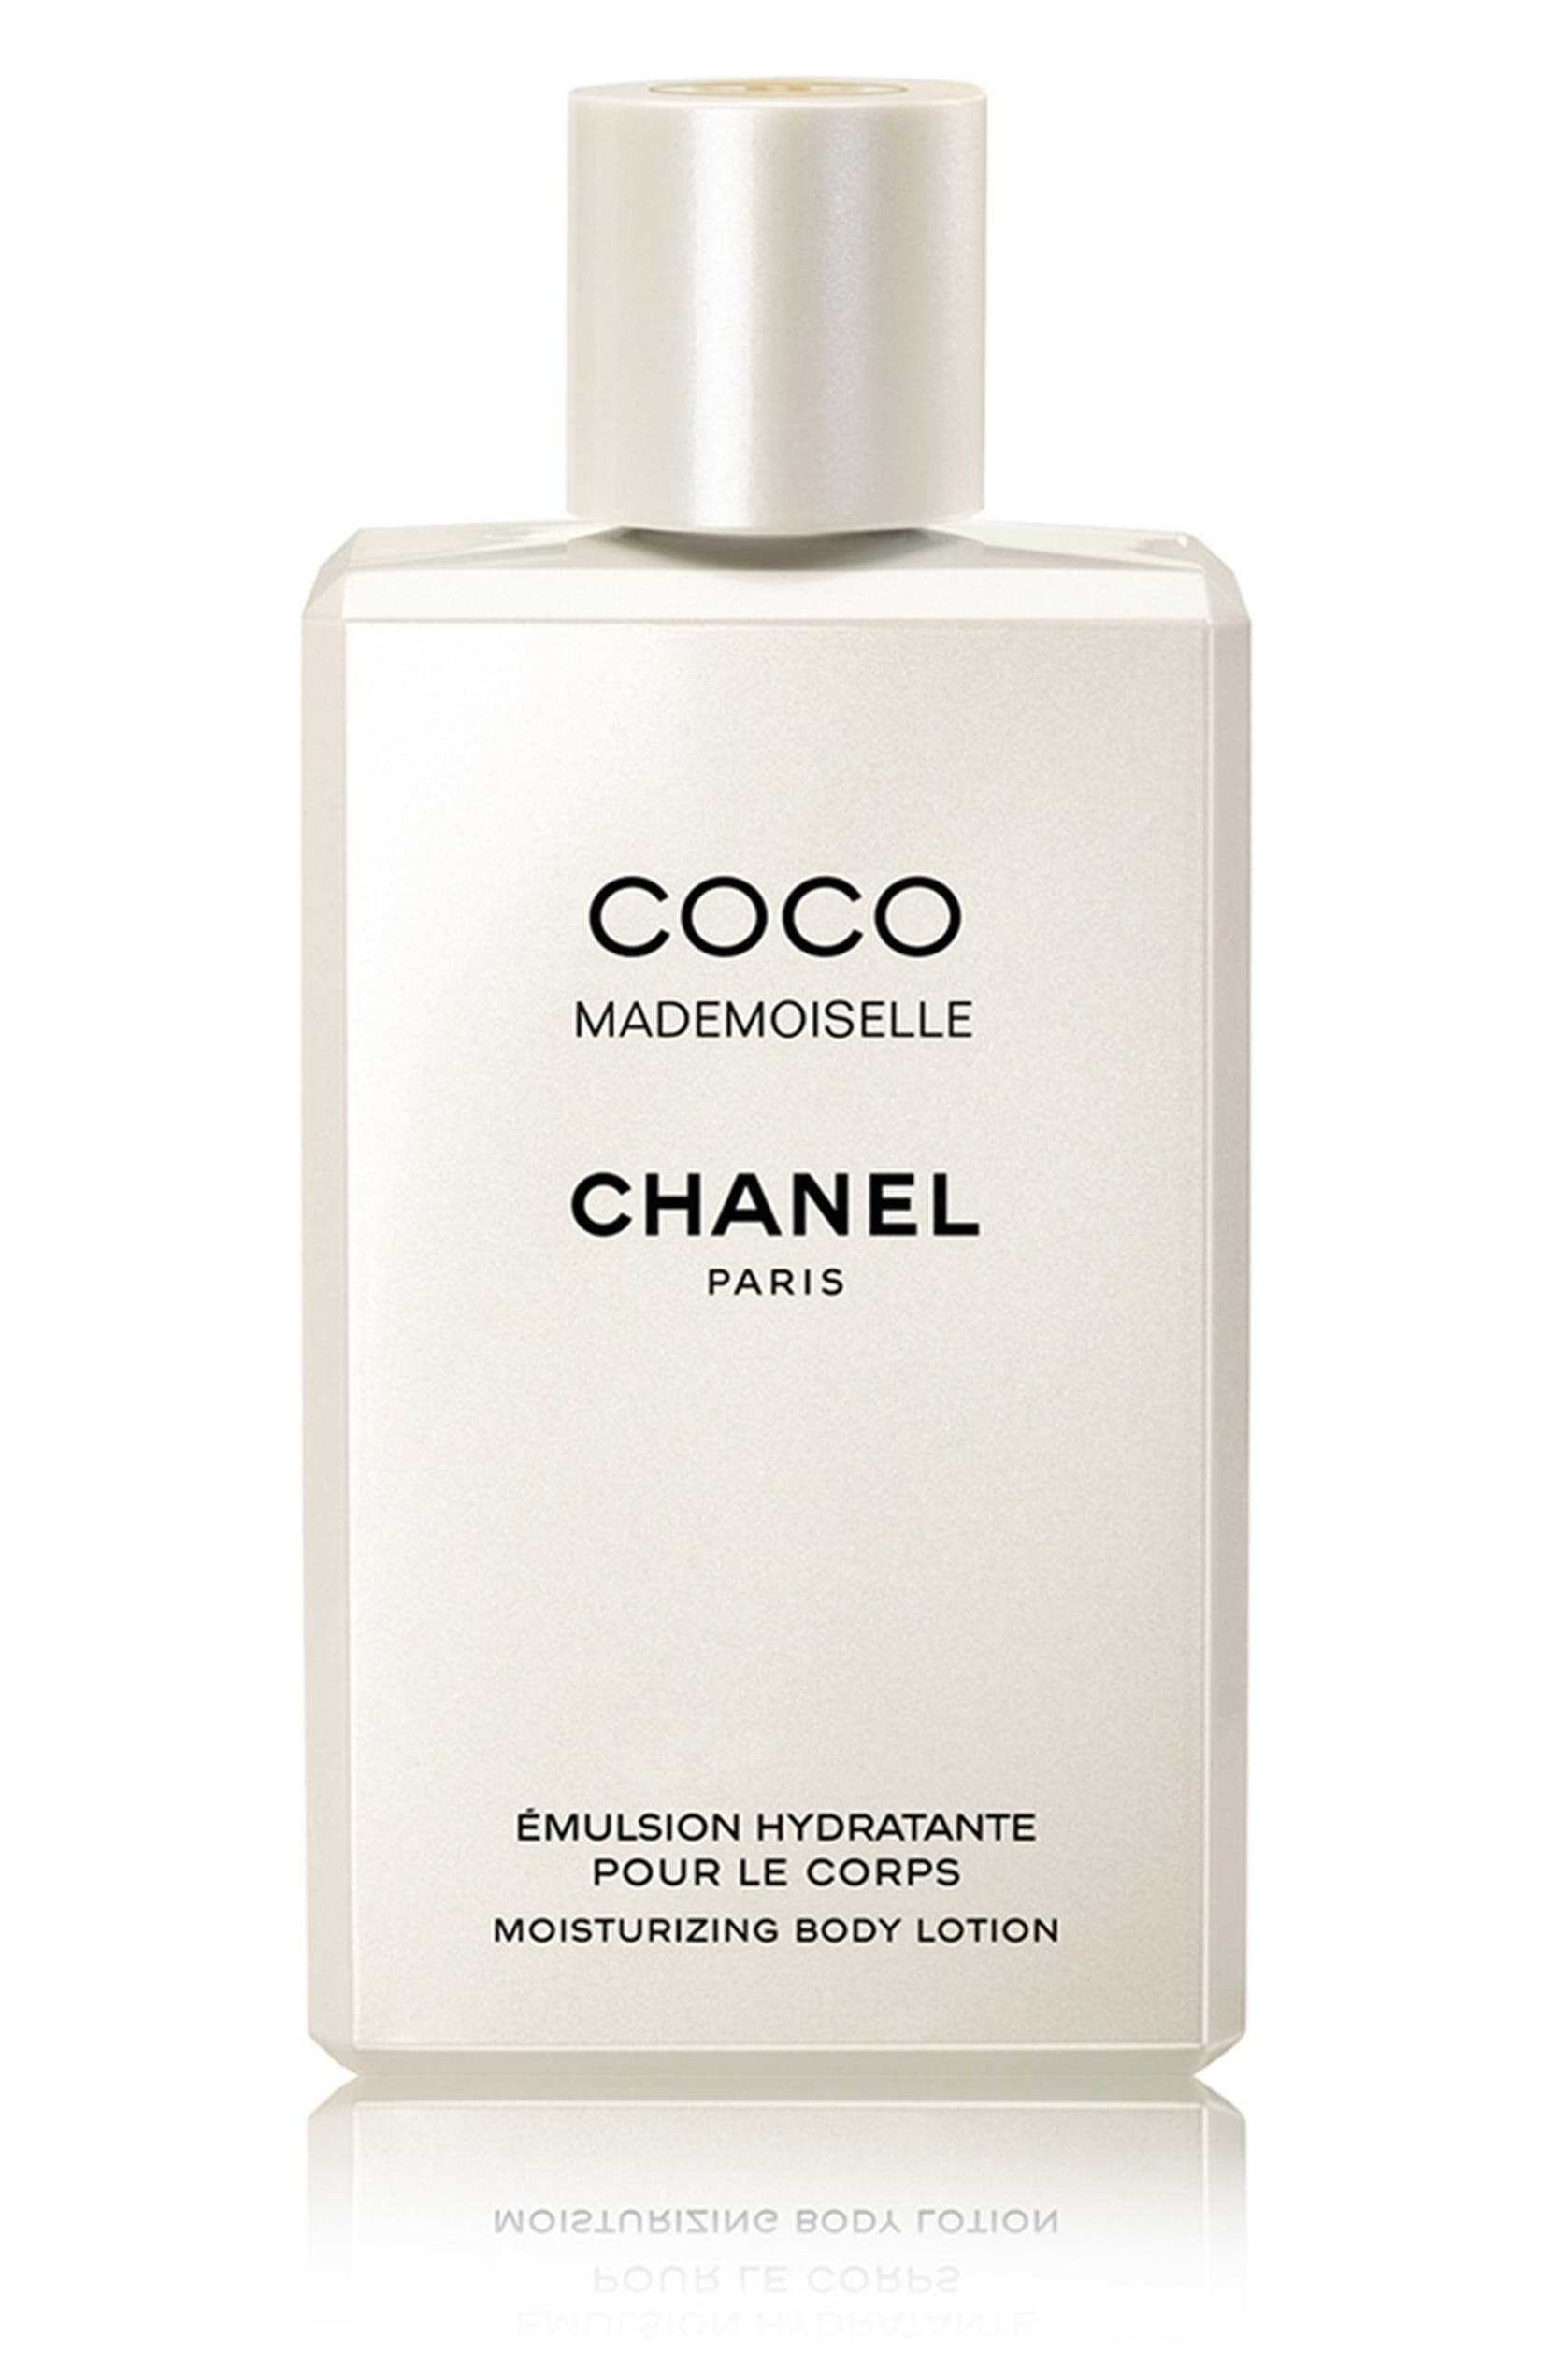 CHANEL COCO MADEMOISELLE Moisturizing Body Lotion  ccc2d1a58e